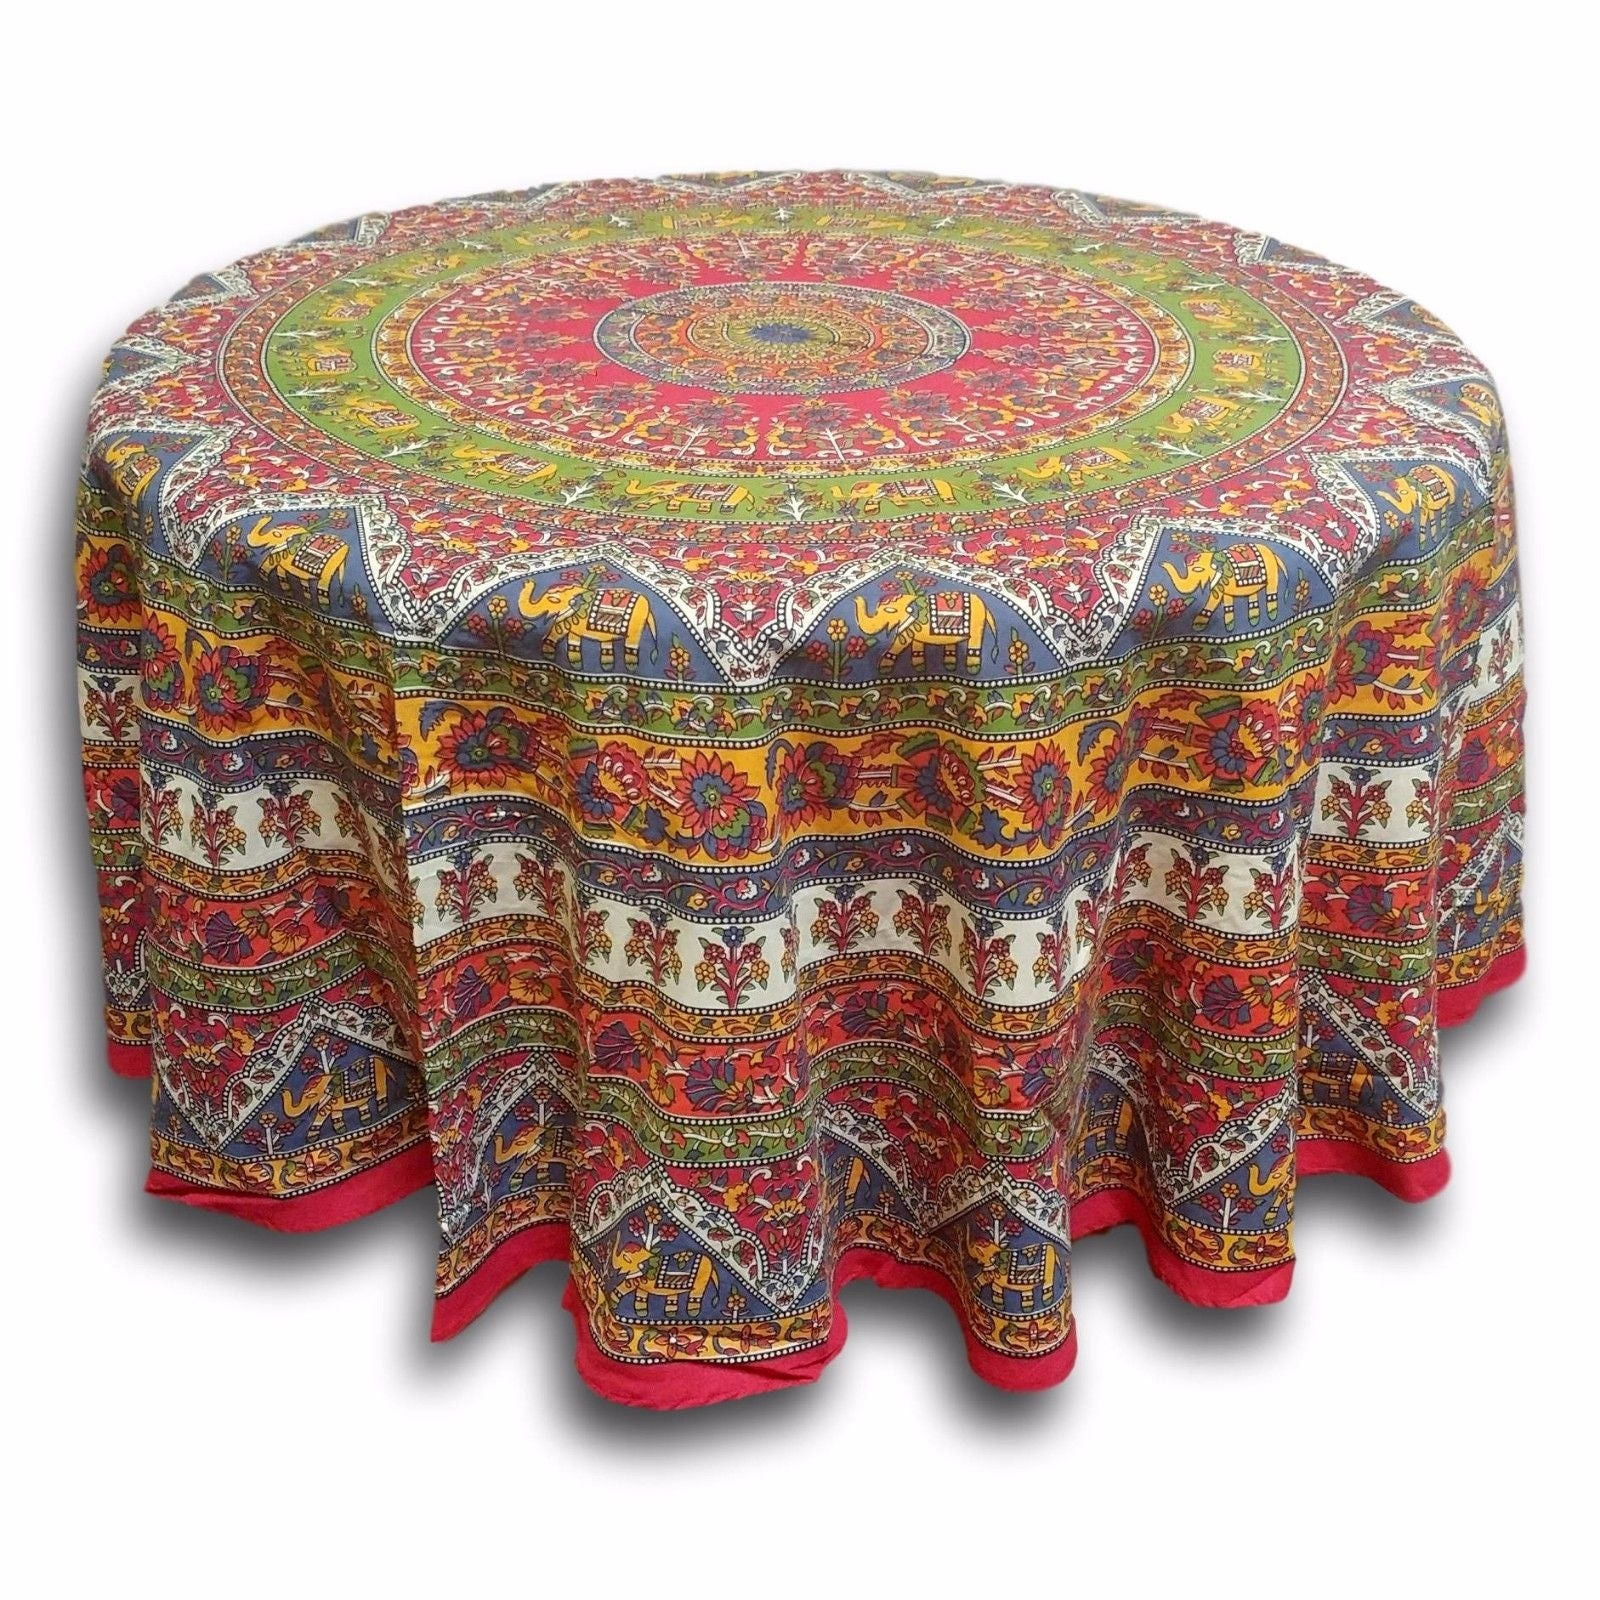 "Handmade Mandala Floral and Elephant Printed Cotton Tablecloth available in Red Blue & Brown in two sizes 76"" Round & 90"" Round - Thumbnail 1"